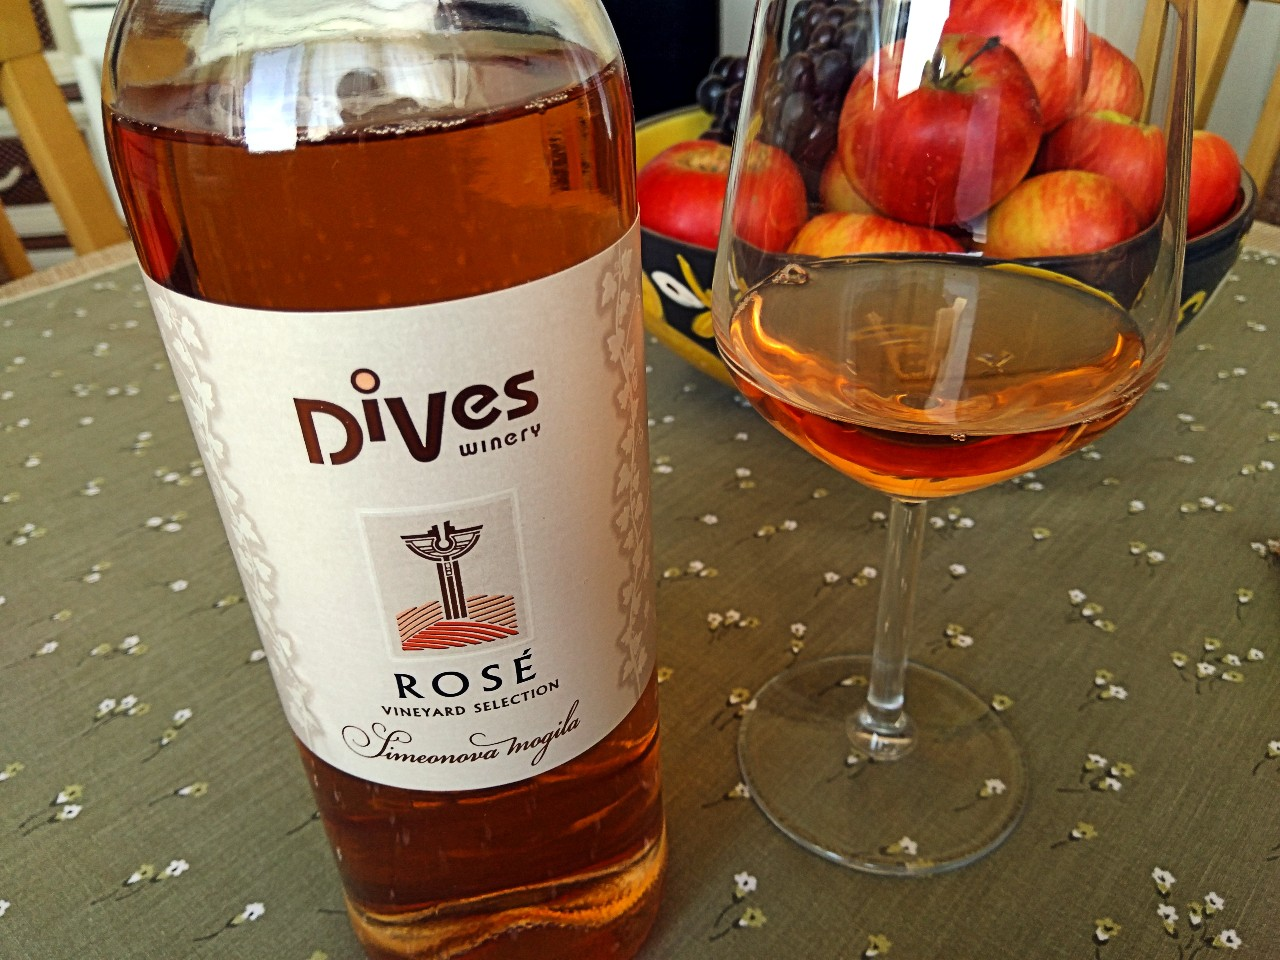 Rose 2018 Vineyard selection – Dives Estate